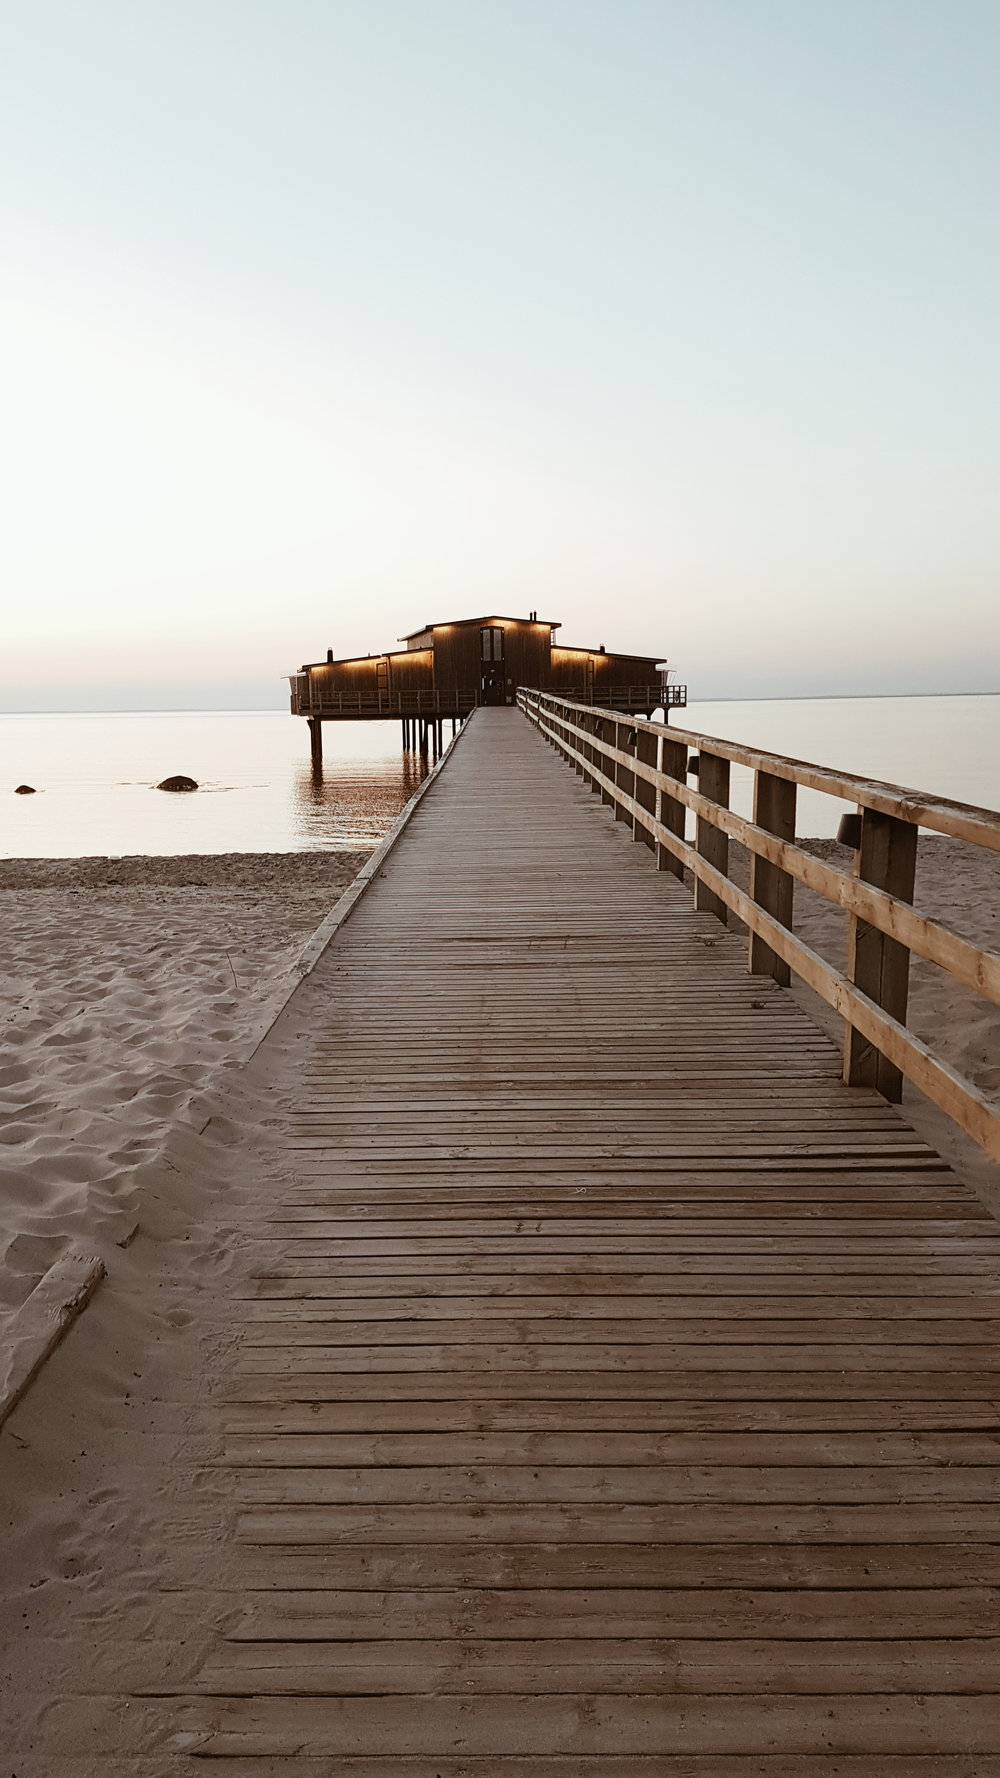 The stunning beach that Hotel Skansen overlooks and the sauna at the end of the pier for use by hotel residents